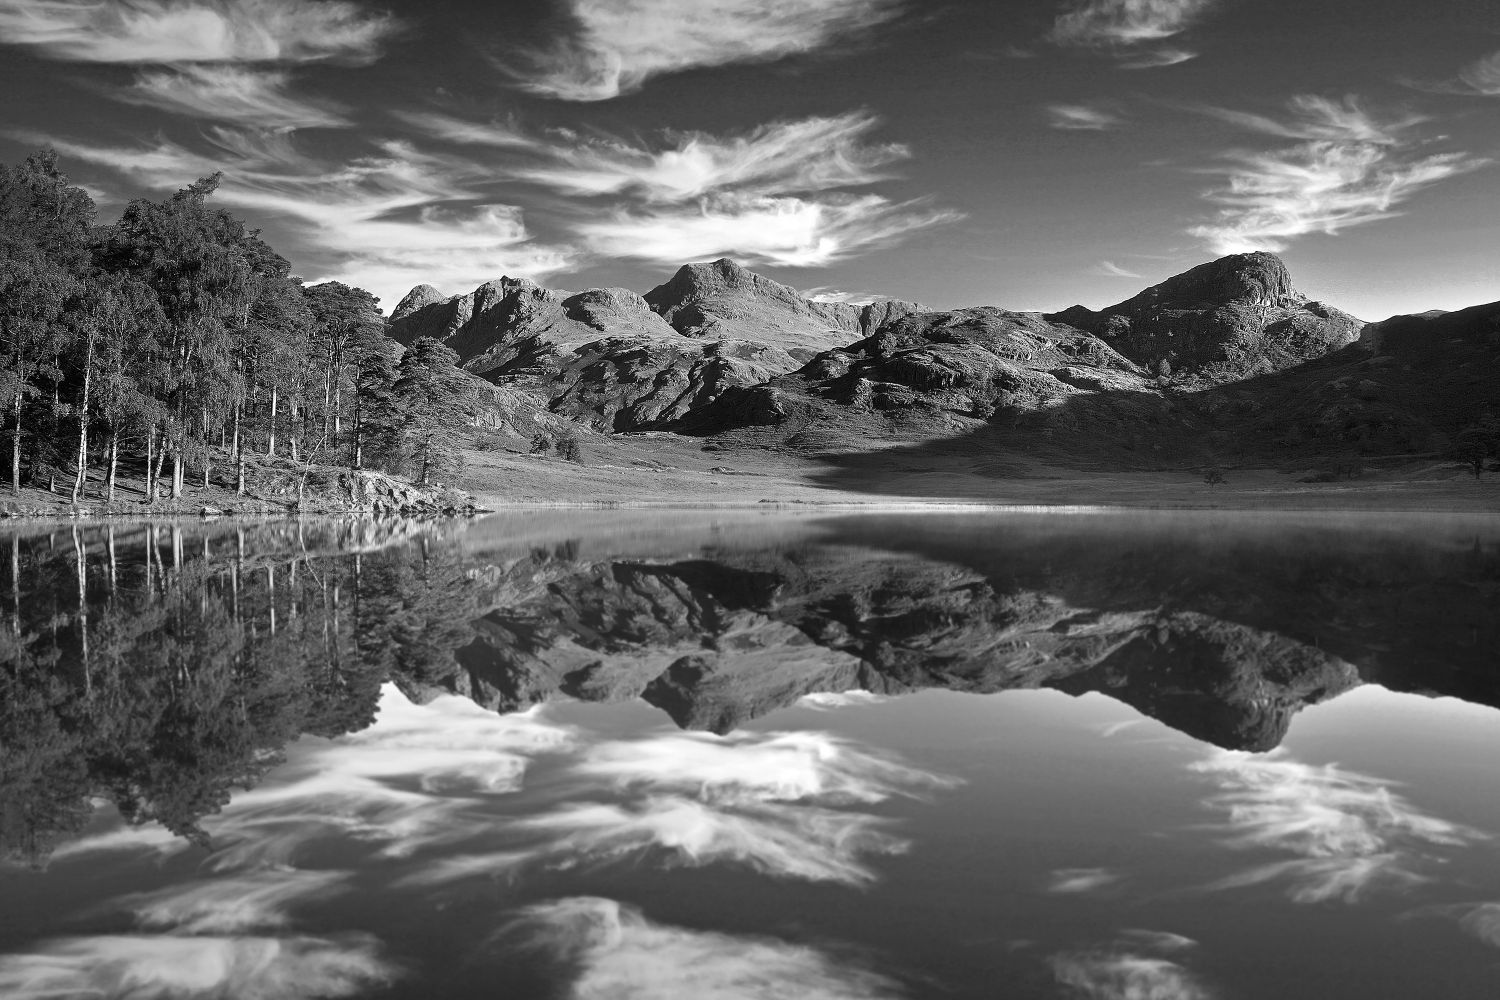 Dancing clouds over the Langdales and Blea Tarn in Black and White by Martin Lawrence